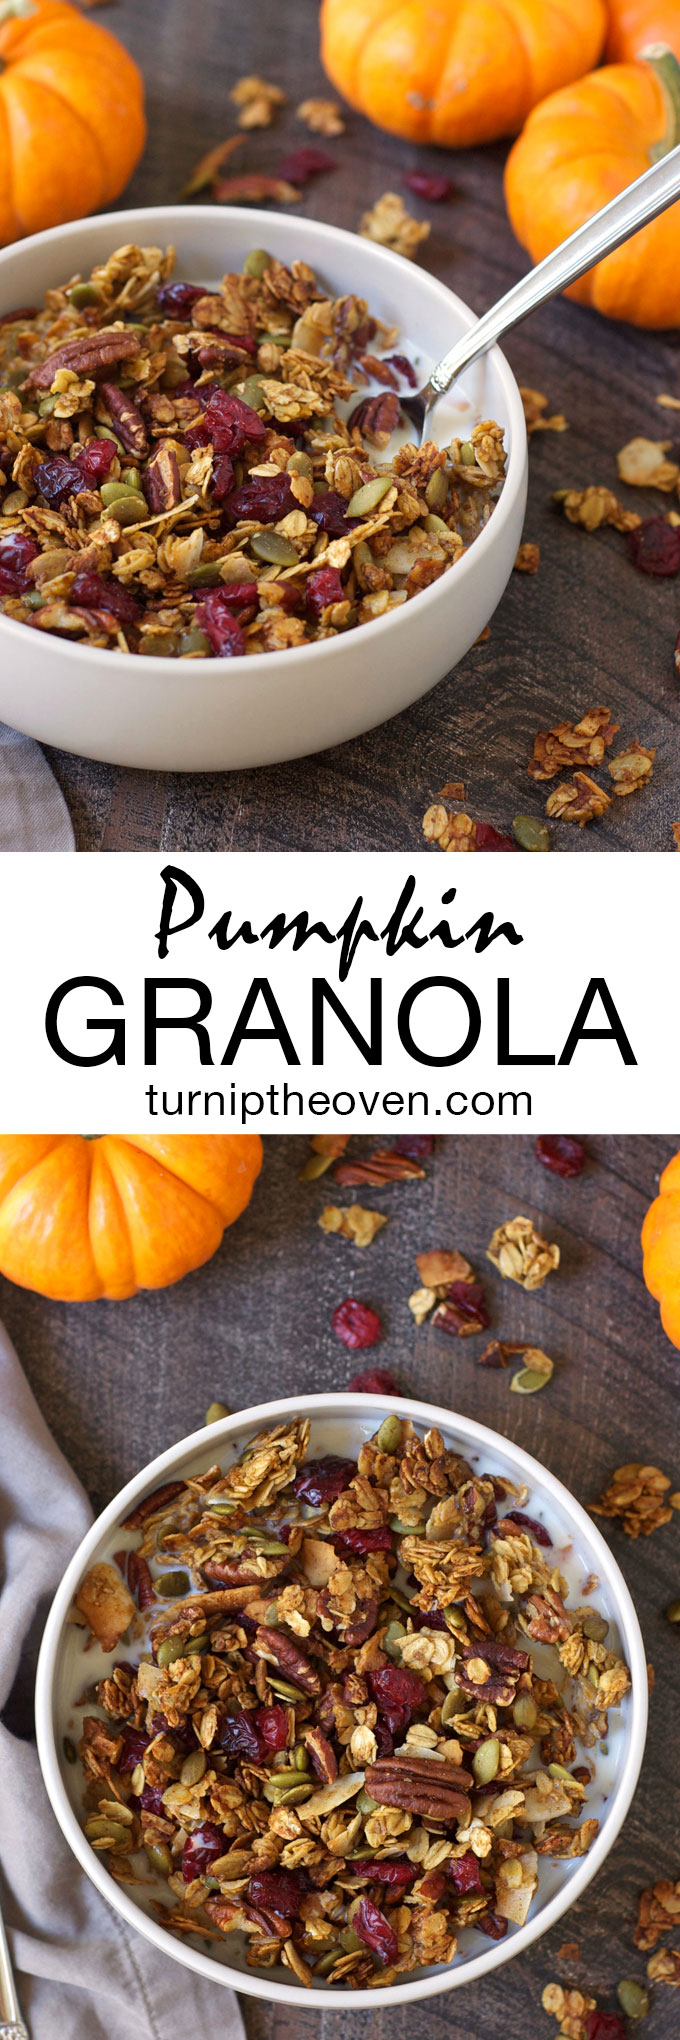 Pumpkin Granola -- This healthy, gluten-free granola is bursting with delicious fall ingredients like pumpkin puree, toasted nuts, dried cranberries, and warm spices!